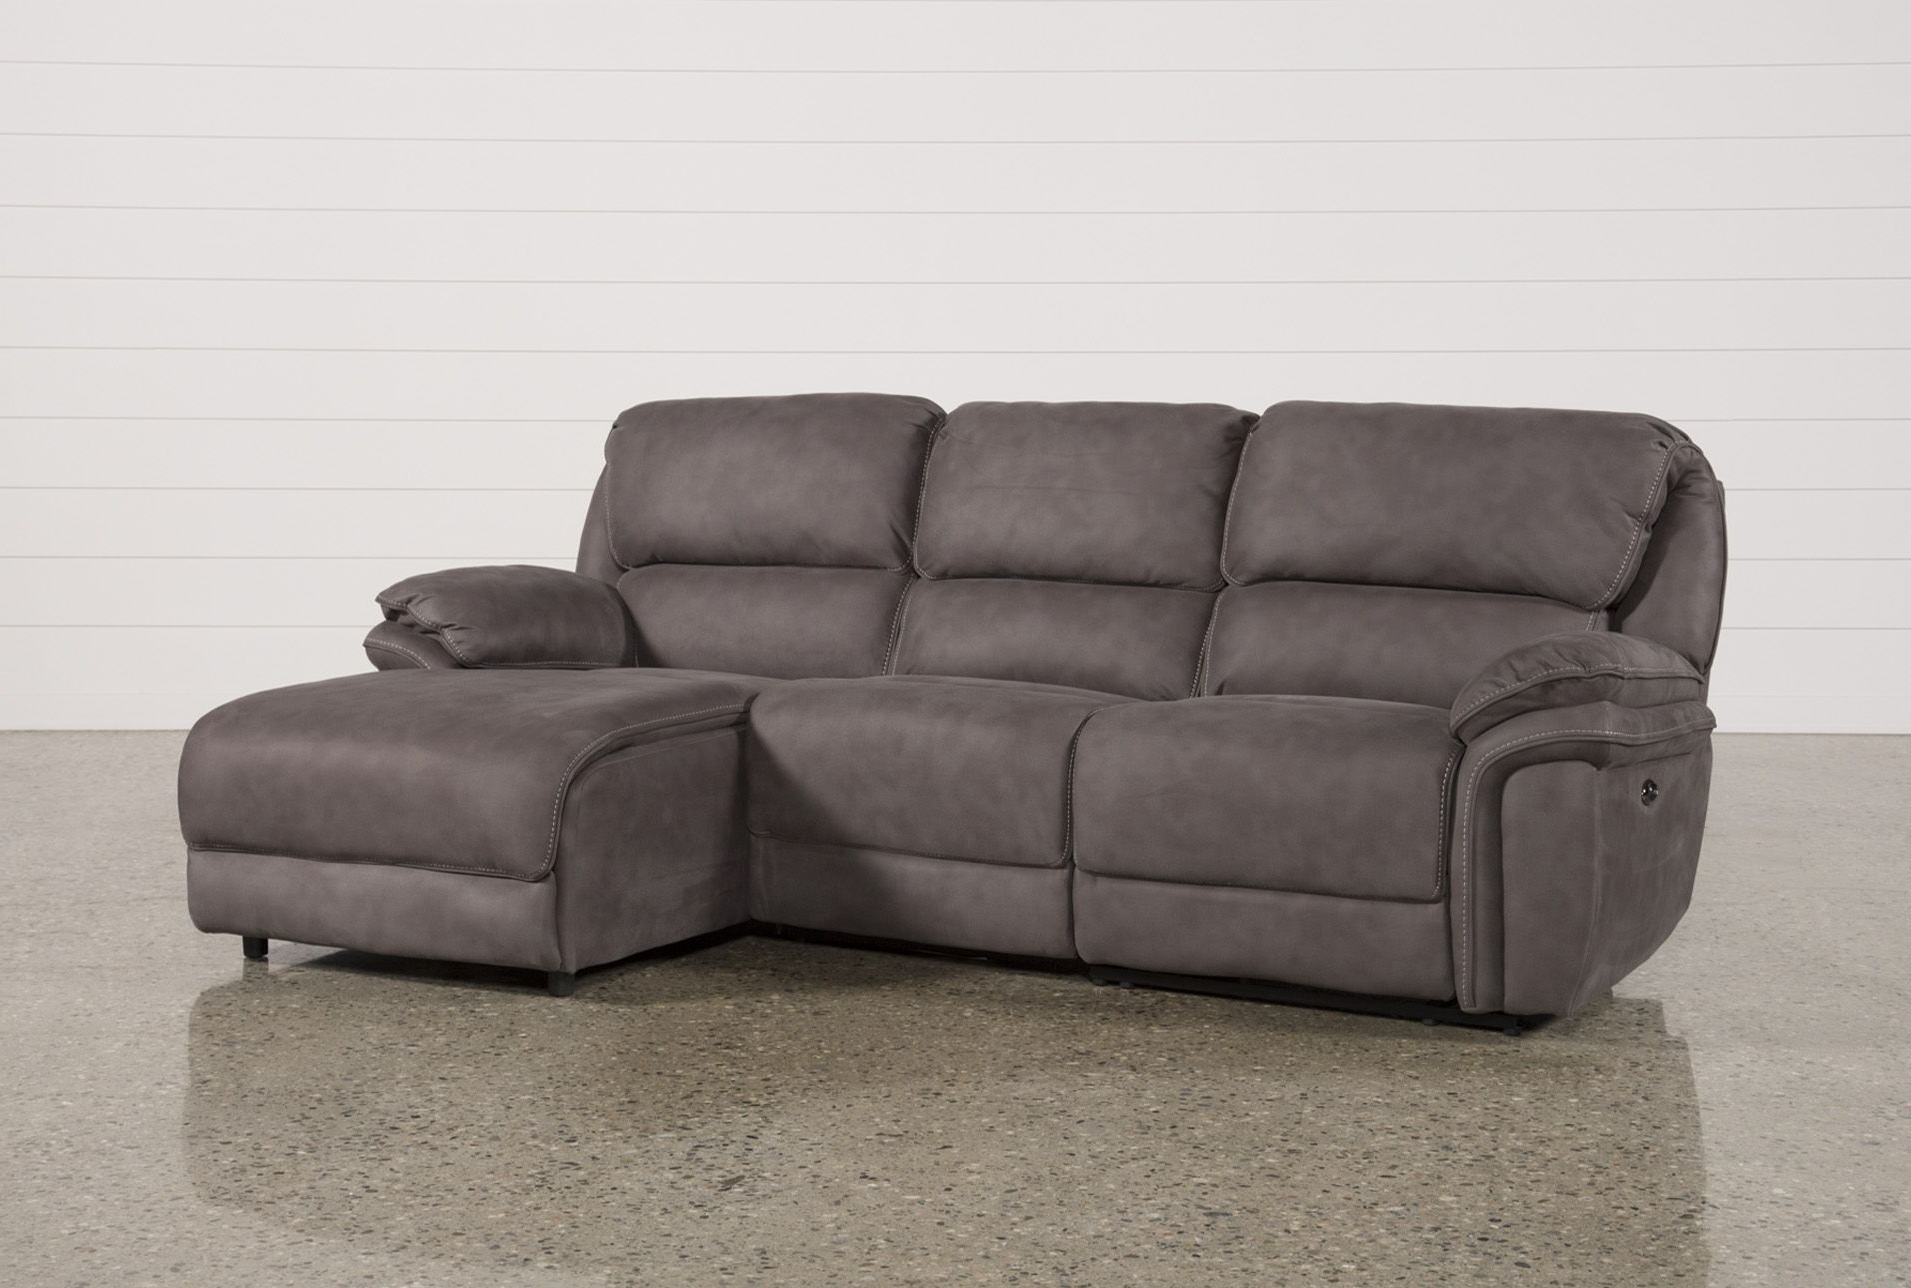 Norfolk Grey 3 Piece Sectionals With Laf Chaise Regarding 2018 Norfolk Grey 3 Piece Sectional W/raf Chaise (Gallery 2 of 20)